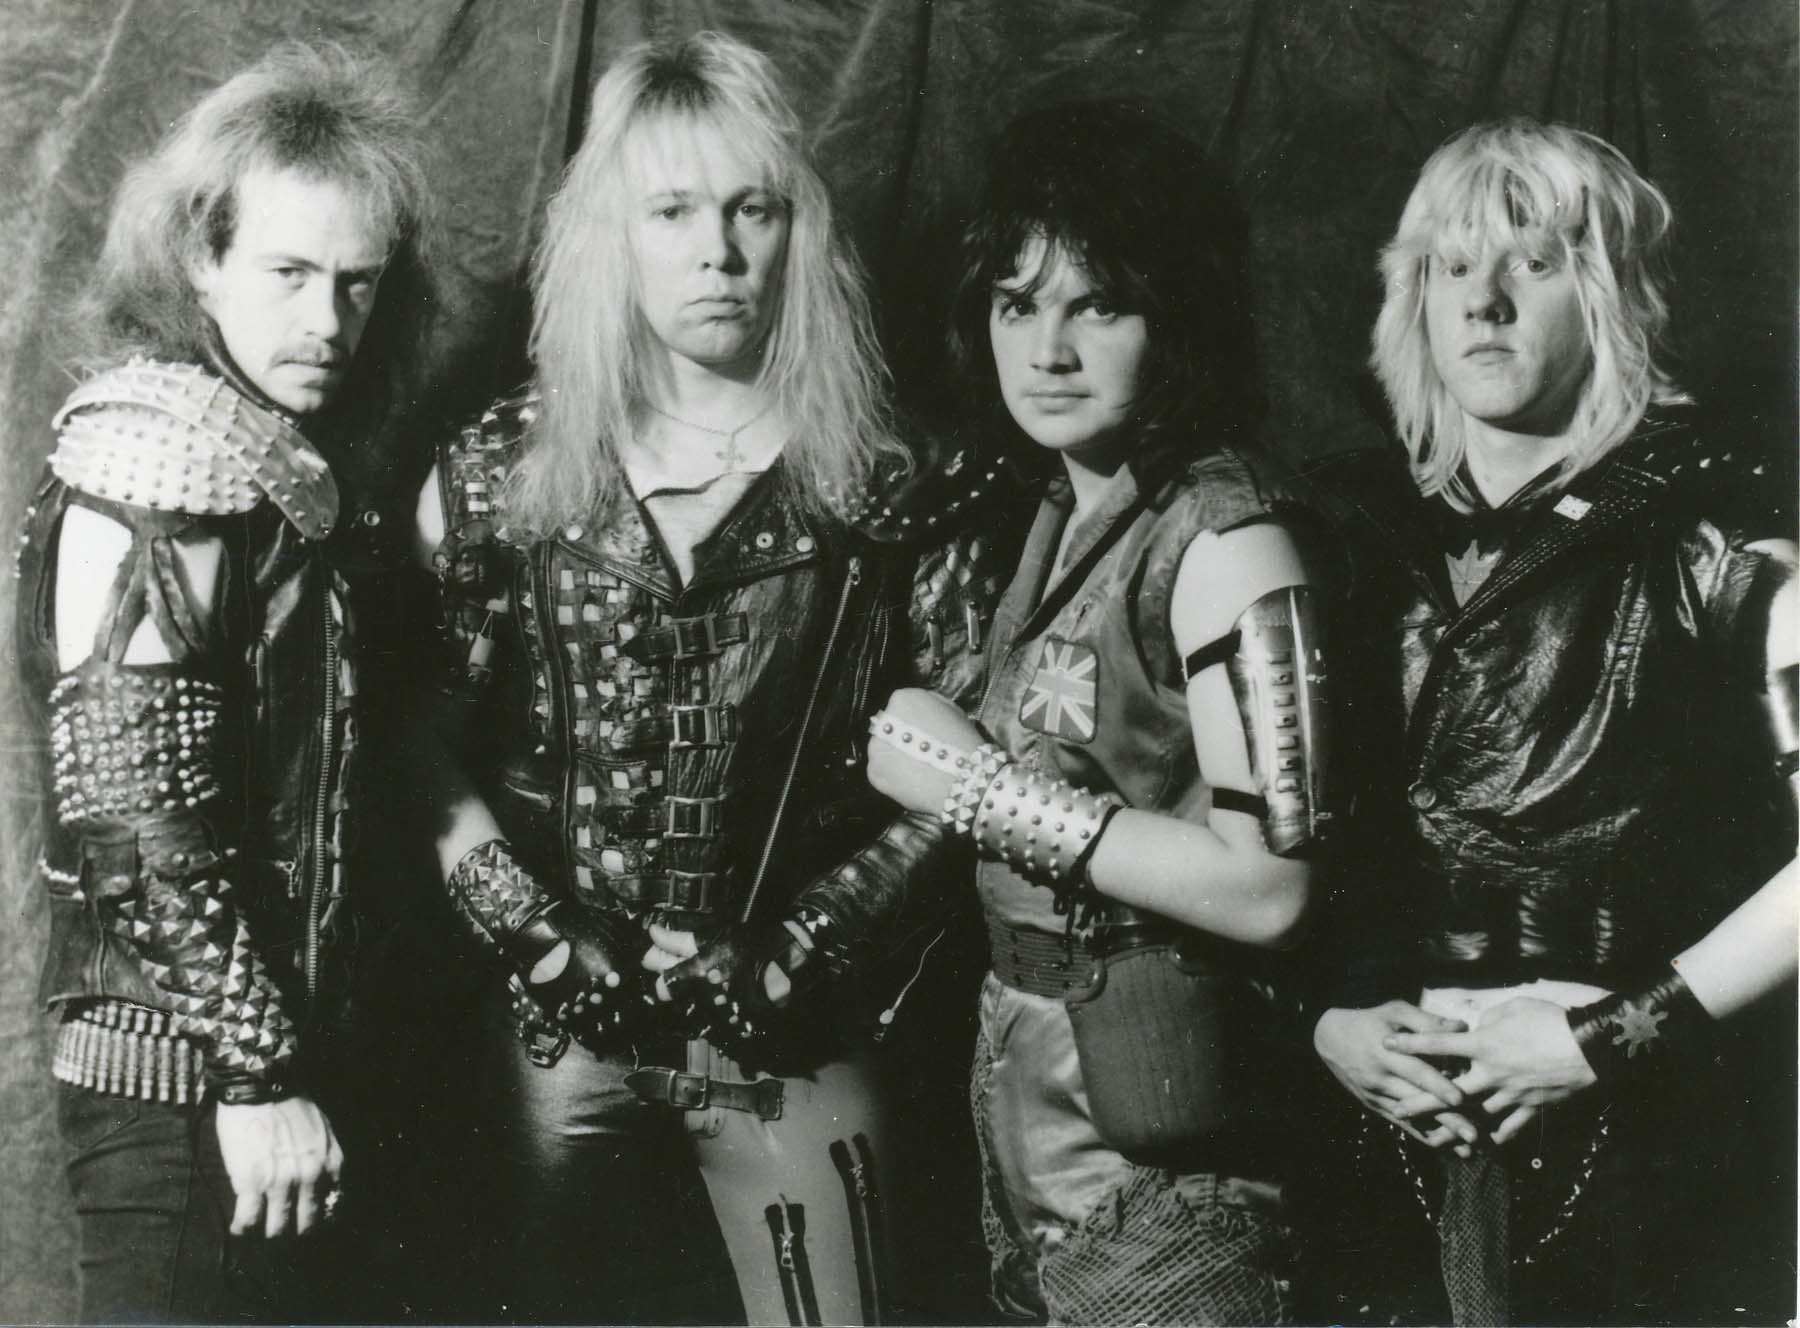 black and white photo of four men in heavy metal leathers